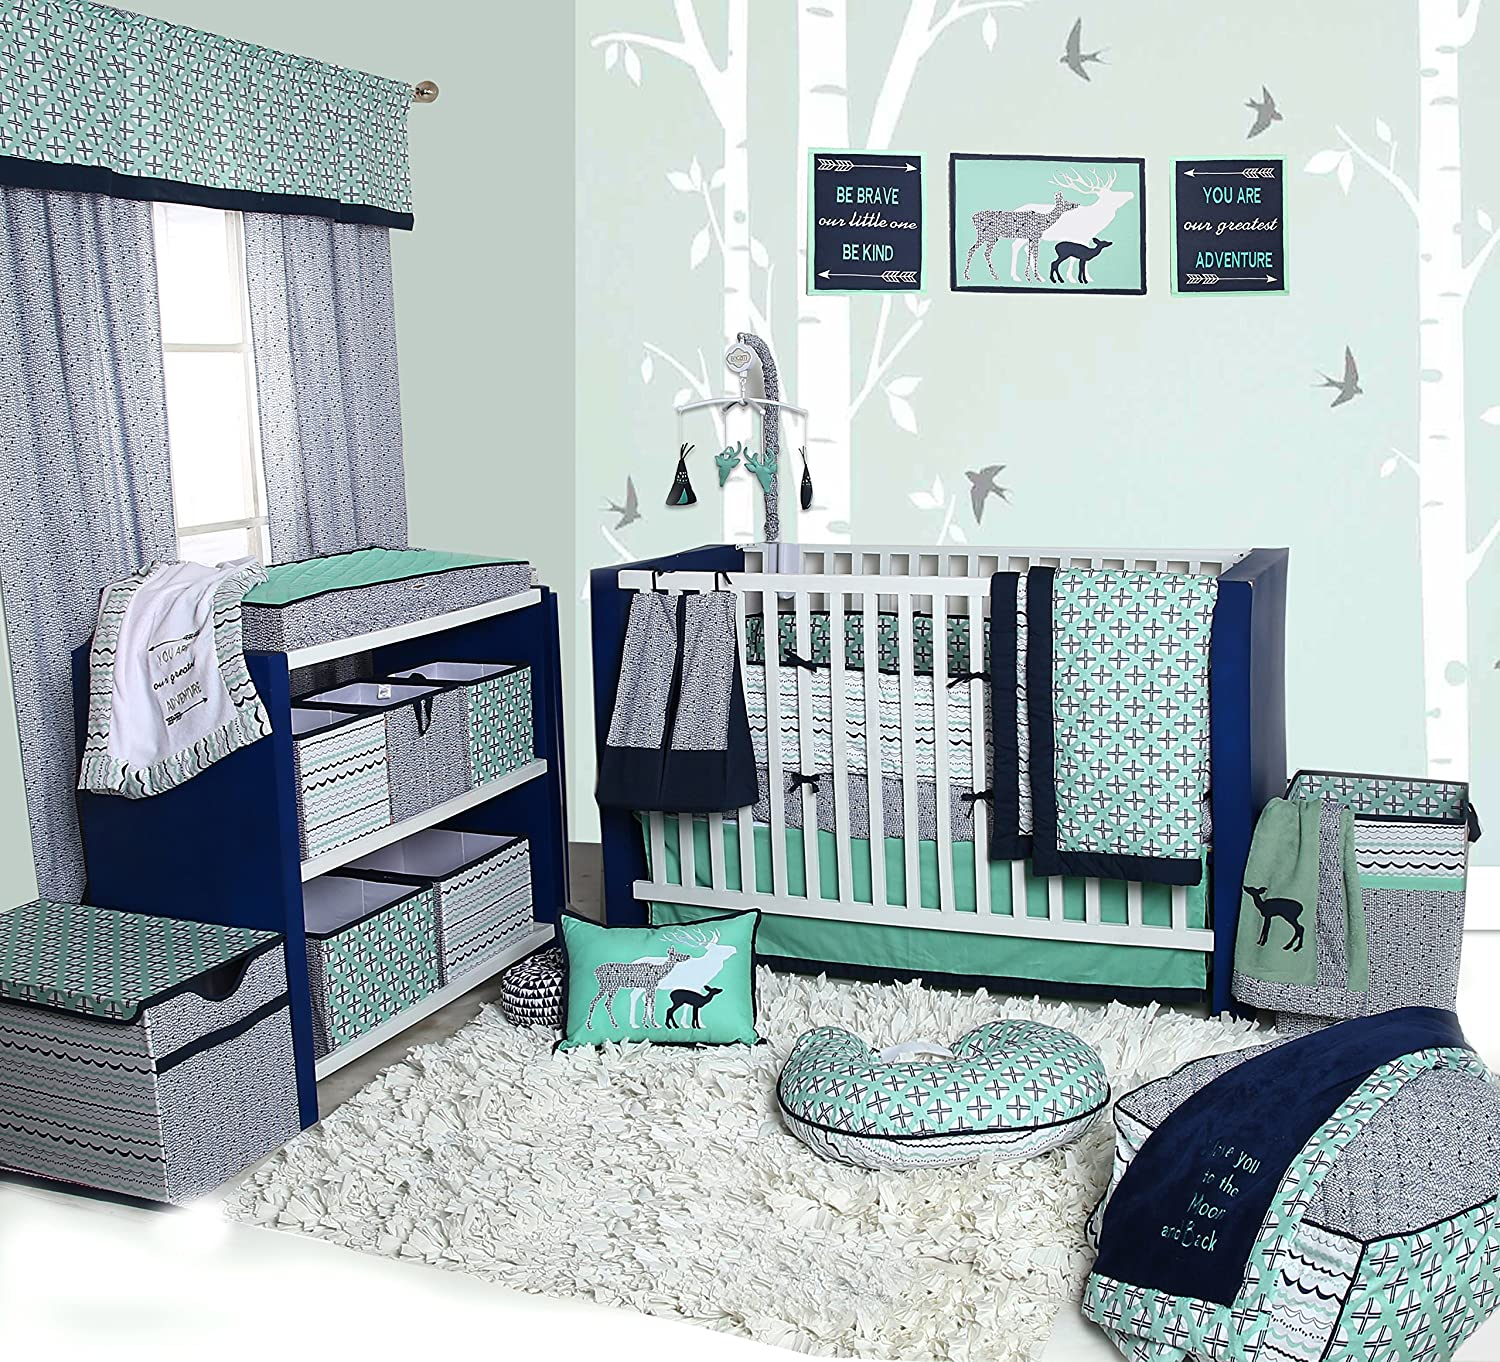 Bacati Tribal 10-Piece Nursery-in-a-Bag Crib Bedding Set with Bumper Pad